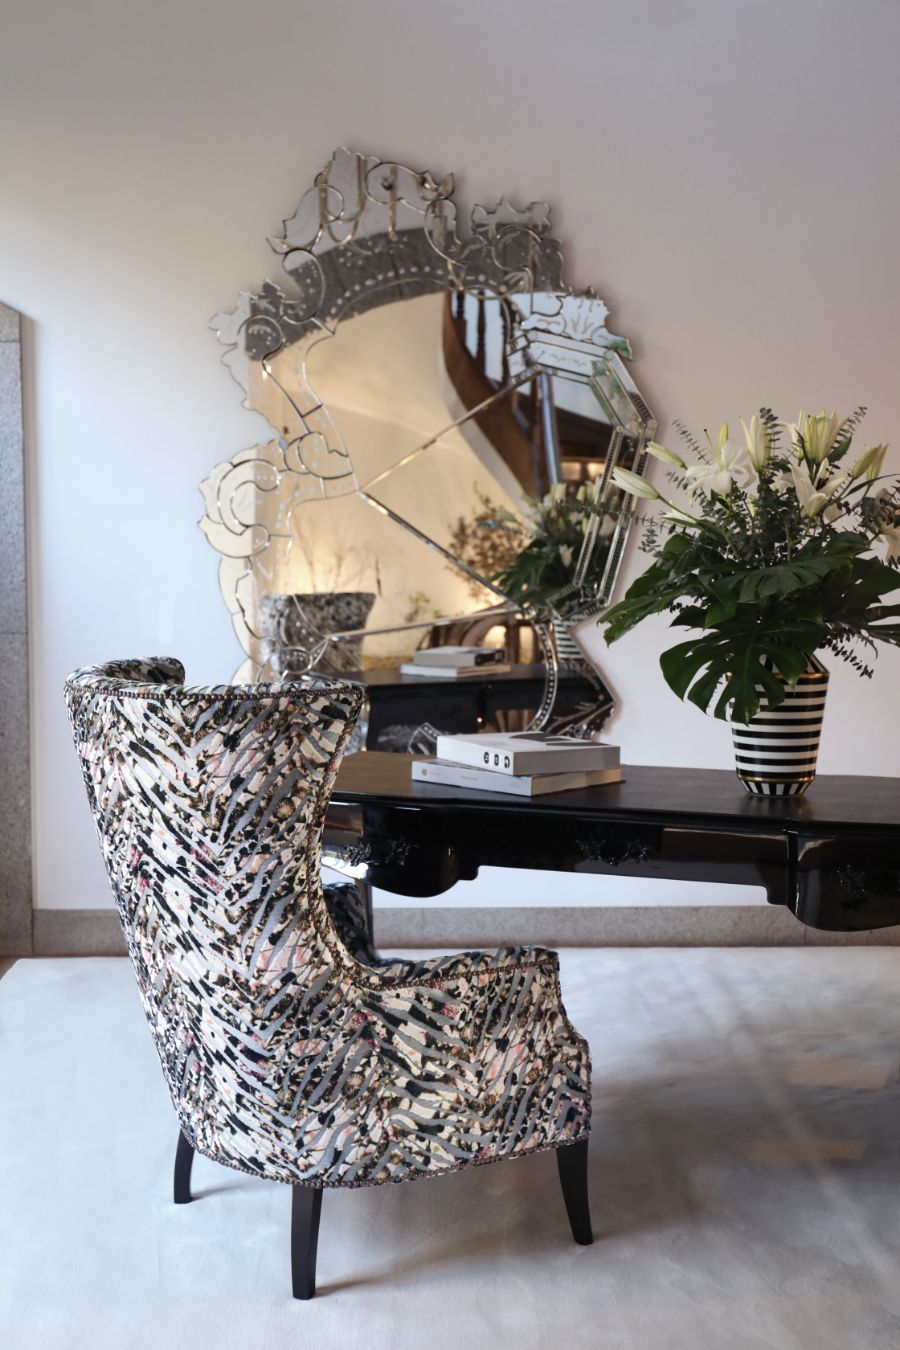 Interior Design Ideas - Fresh, Modern and Trendy  interior design ideas Interior Design Ideas – Fresh, Modern and Trendy Interior Design Ideas Fresh Modern and Trendy 3